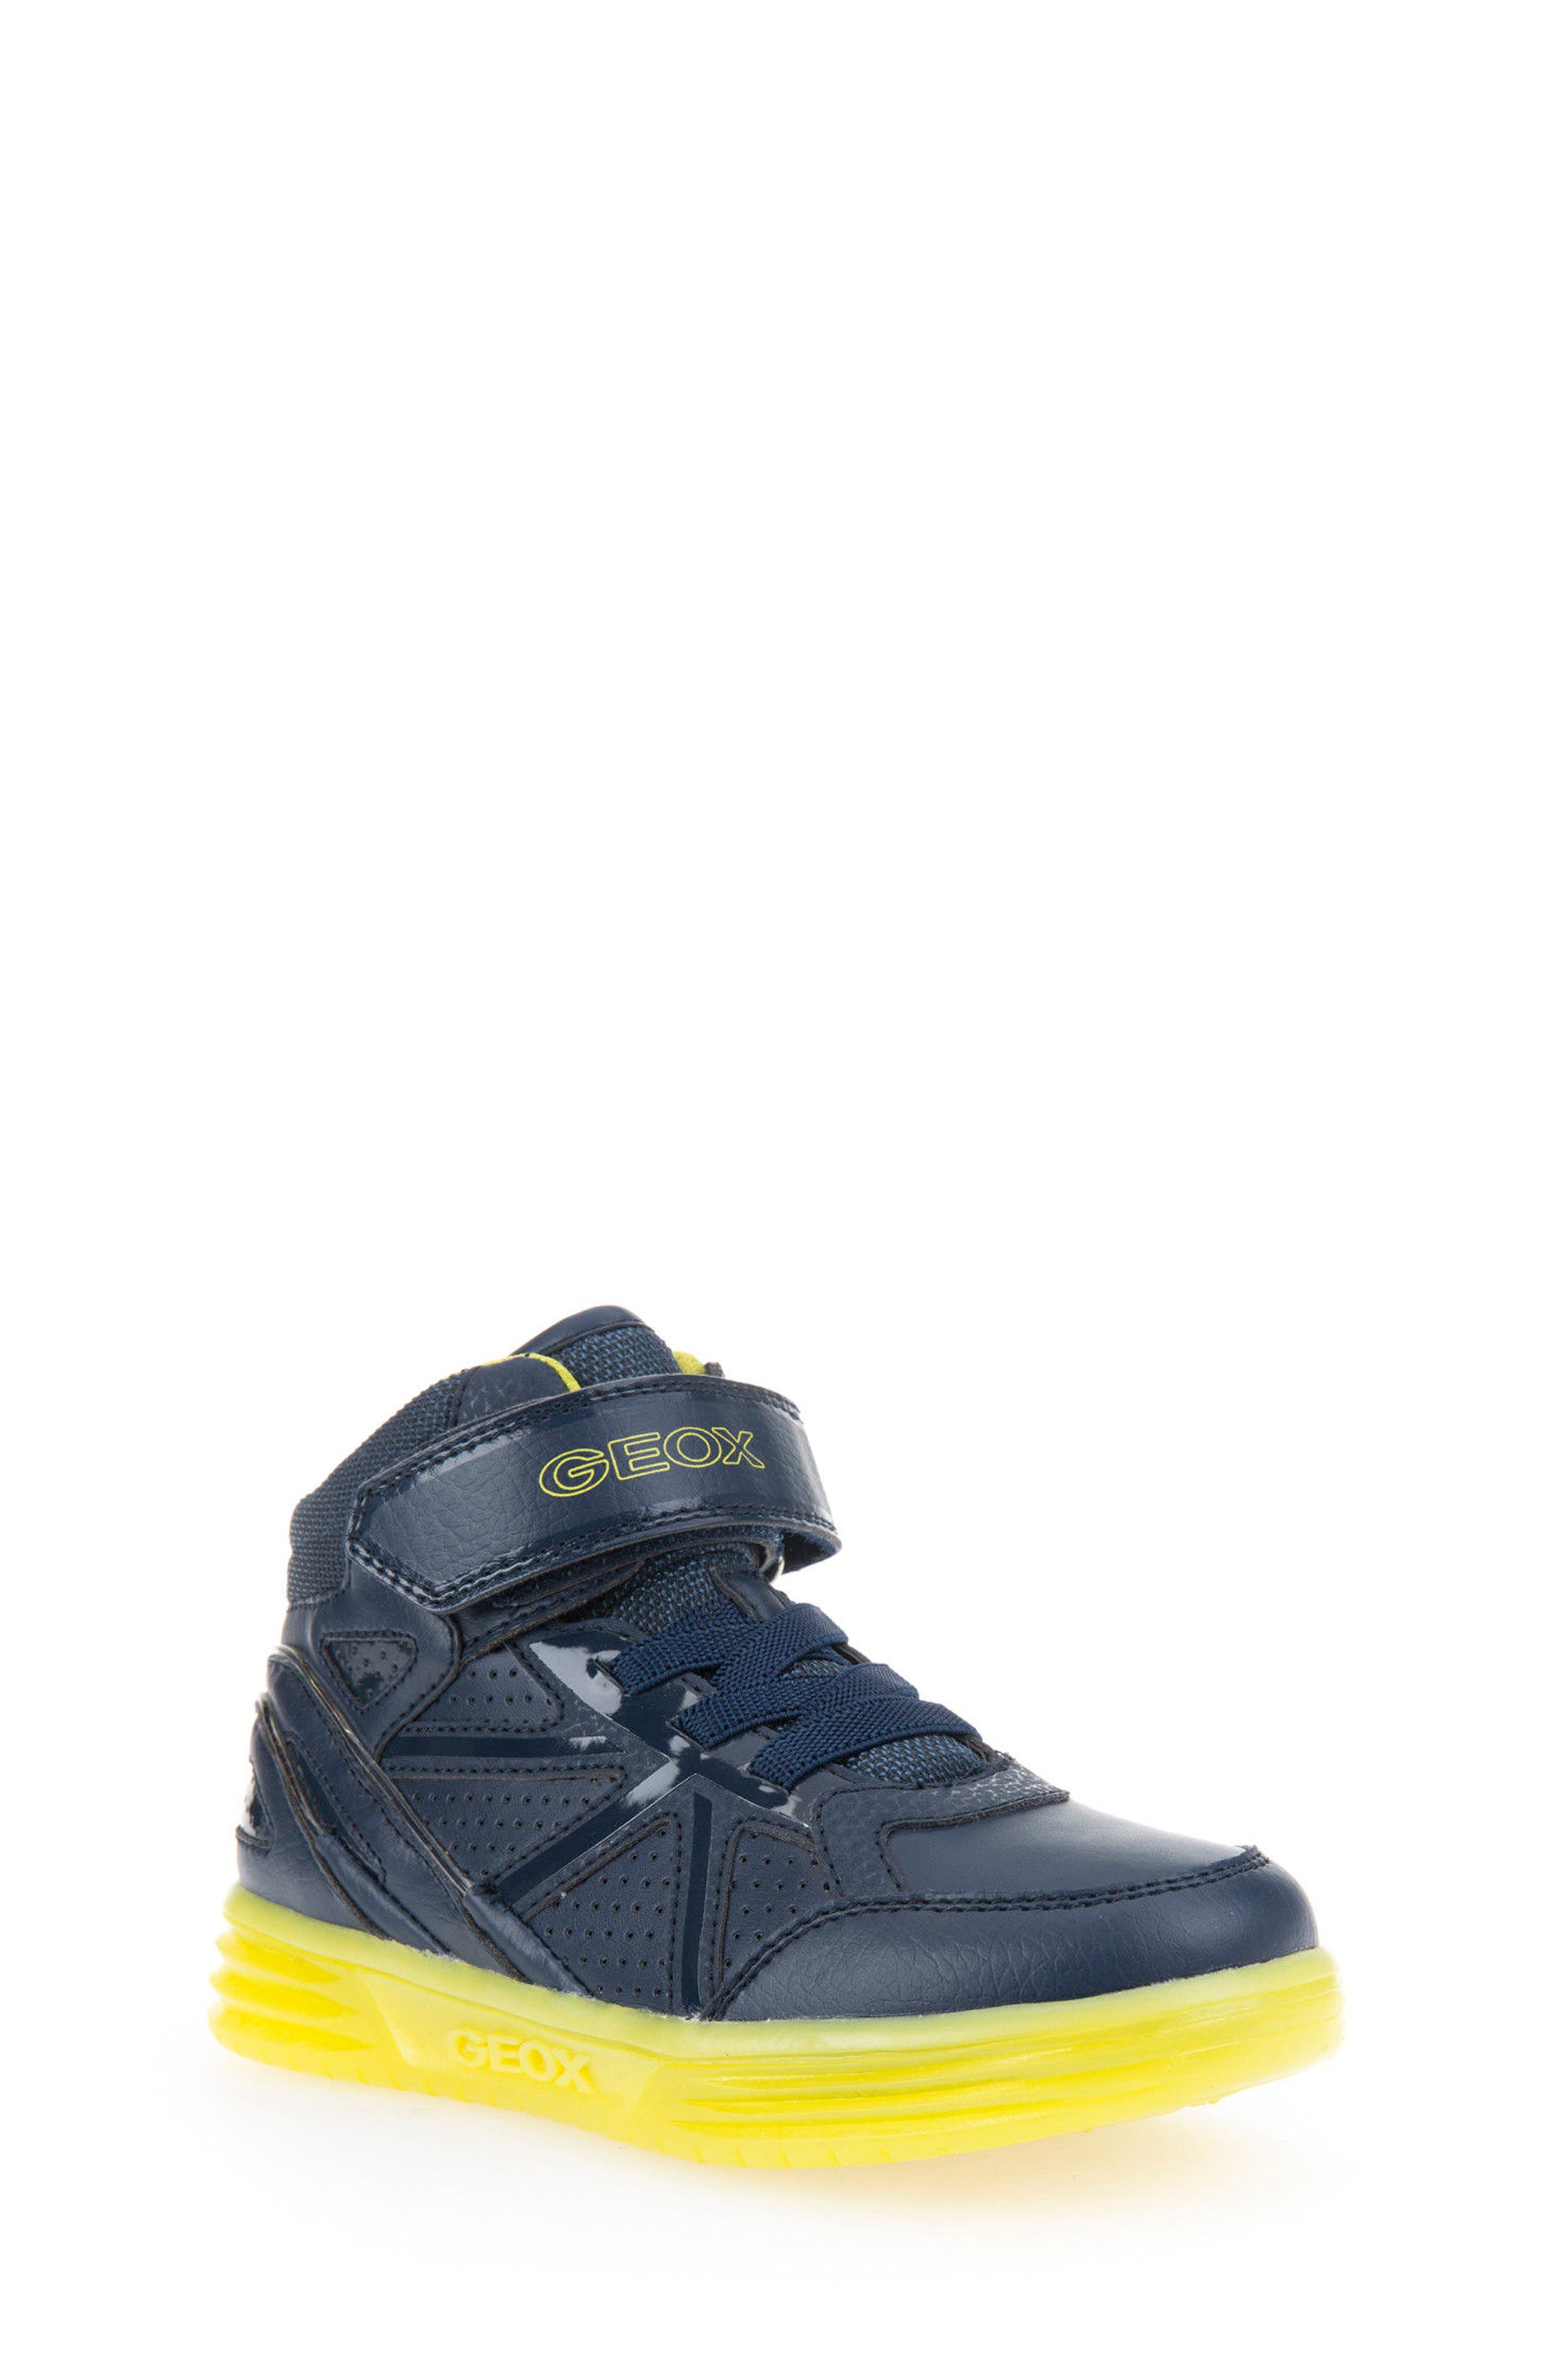 GEOX Argonat High Top Sneaker